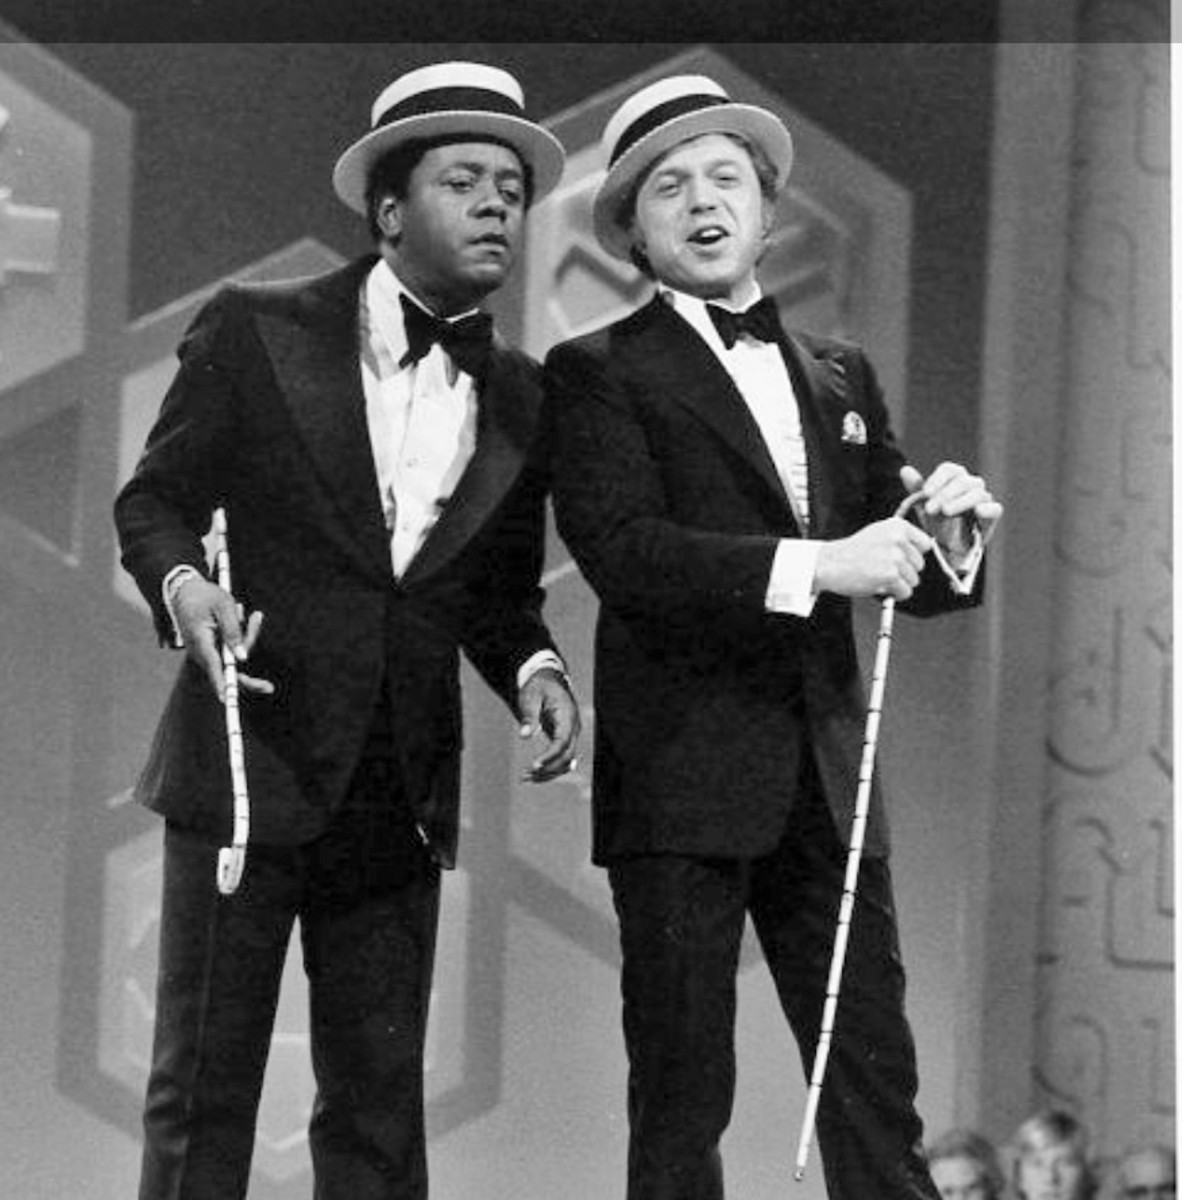 Flip with guest Steve Lawrence doing a duet